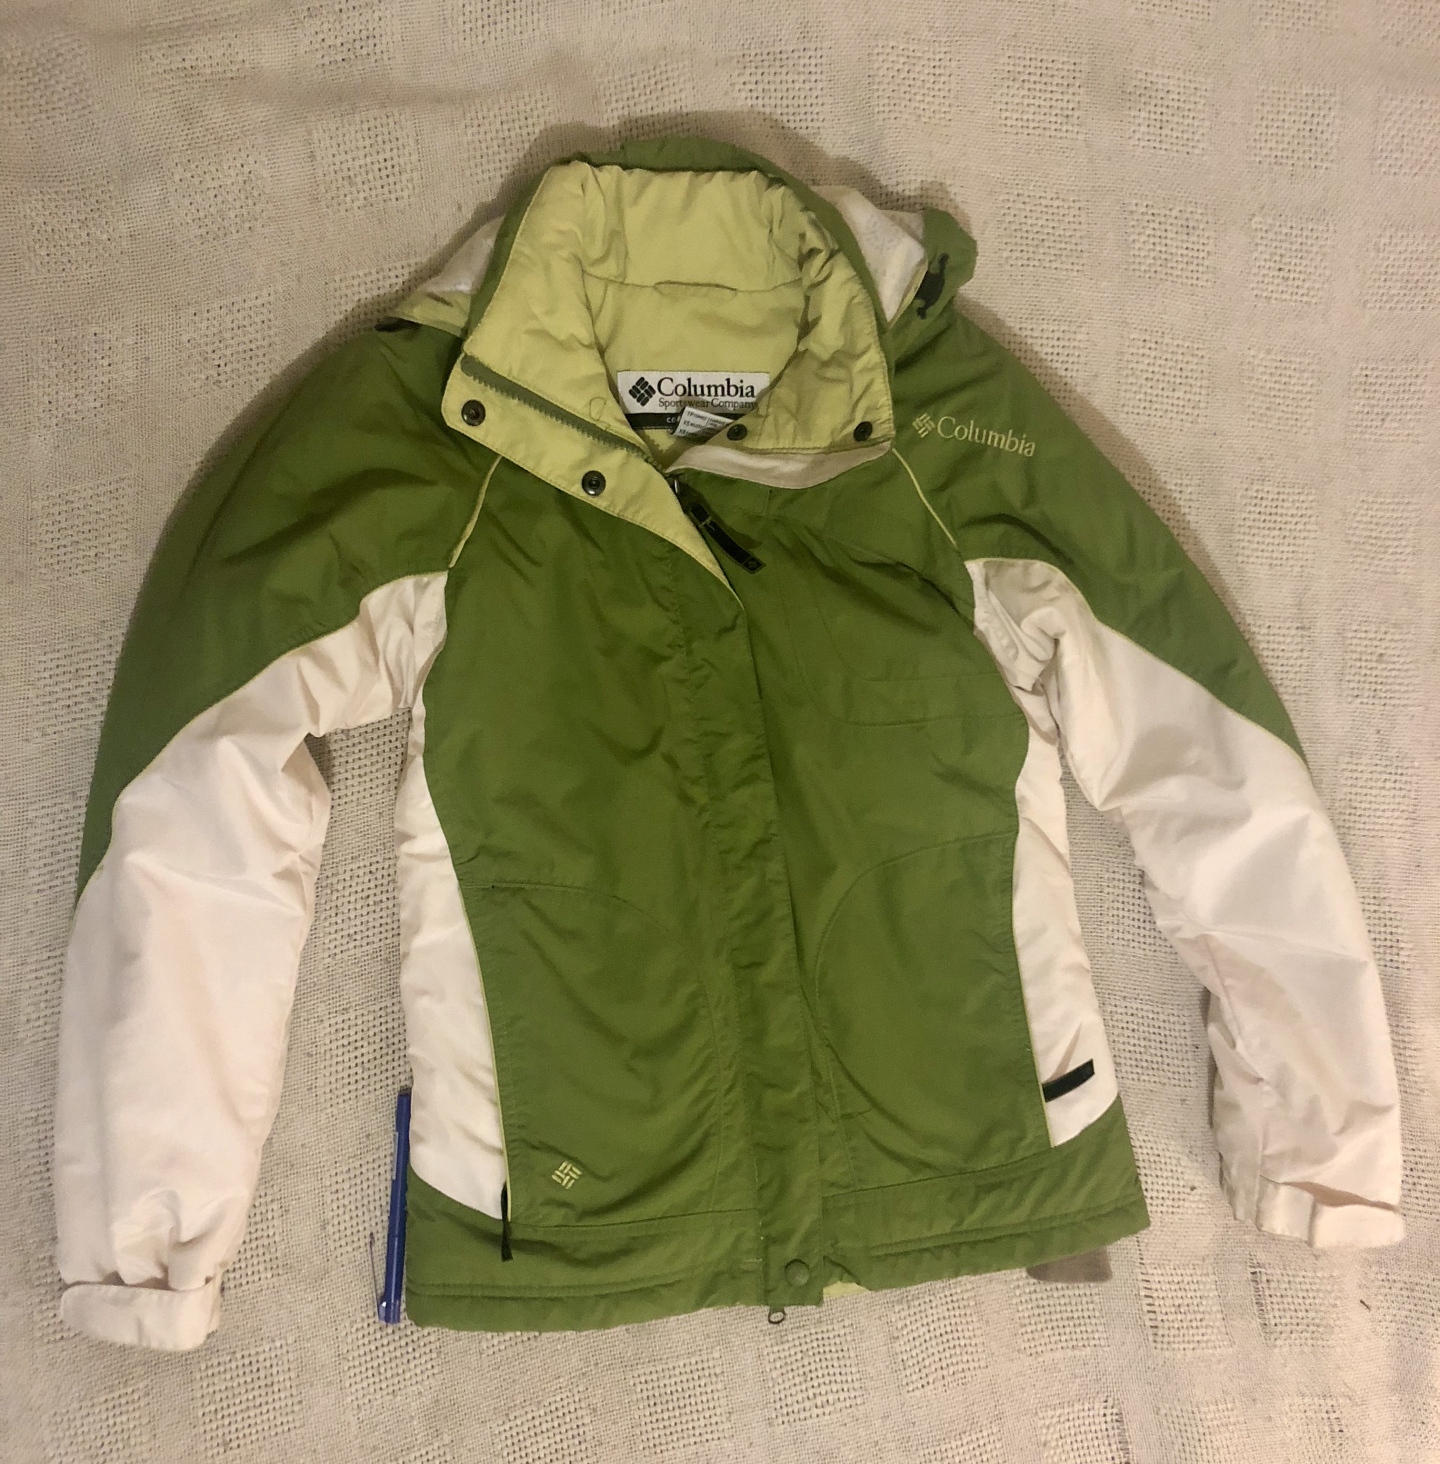 I traded this Columbia brand Winter coat with a girl from a bartering FaceBook page for a jar of Tahini and some Avocado's!